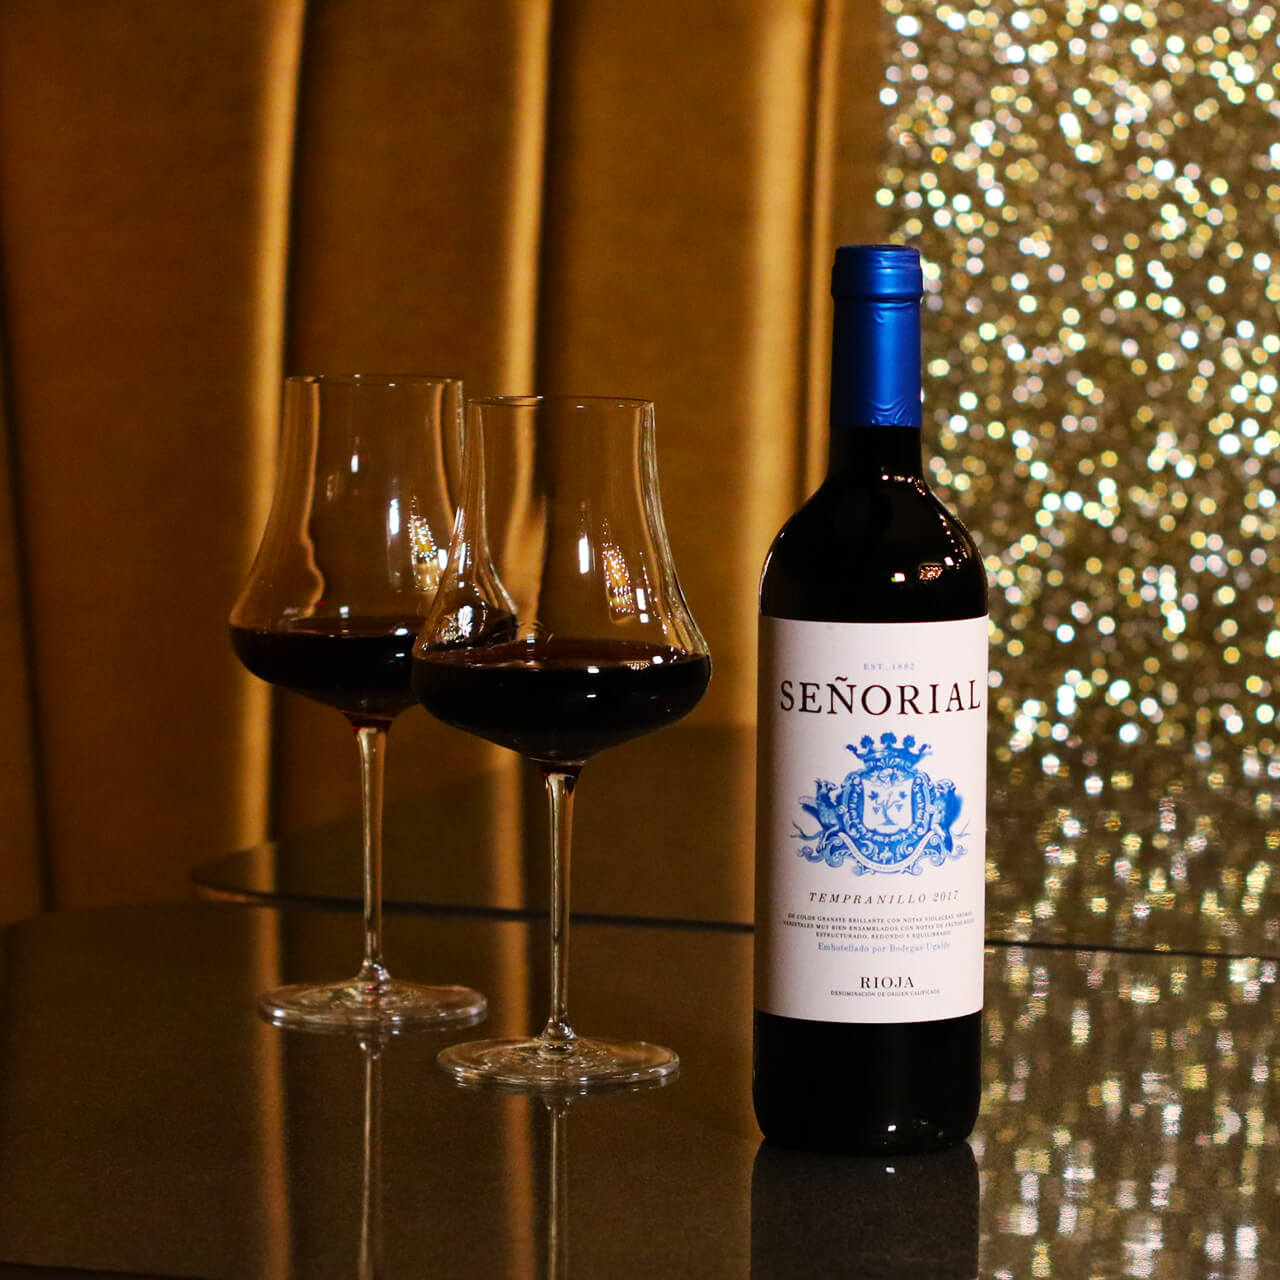 Senorial Tempranillo Rioja - Frankies Wine Bar